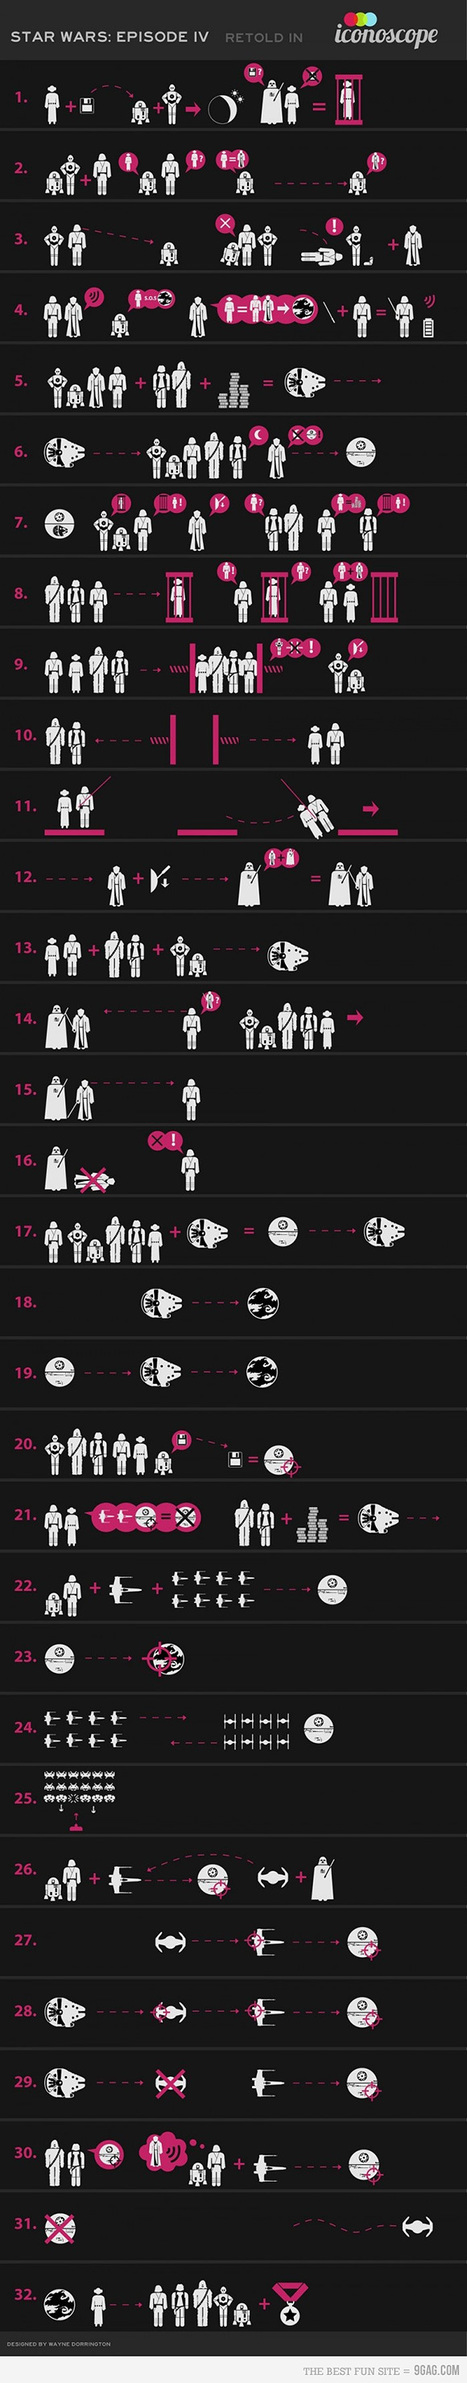 Star Wars Episode IV retold with icons   All Geeks   Scoop.it